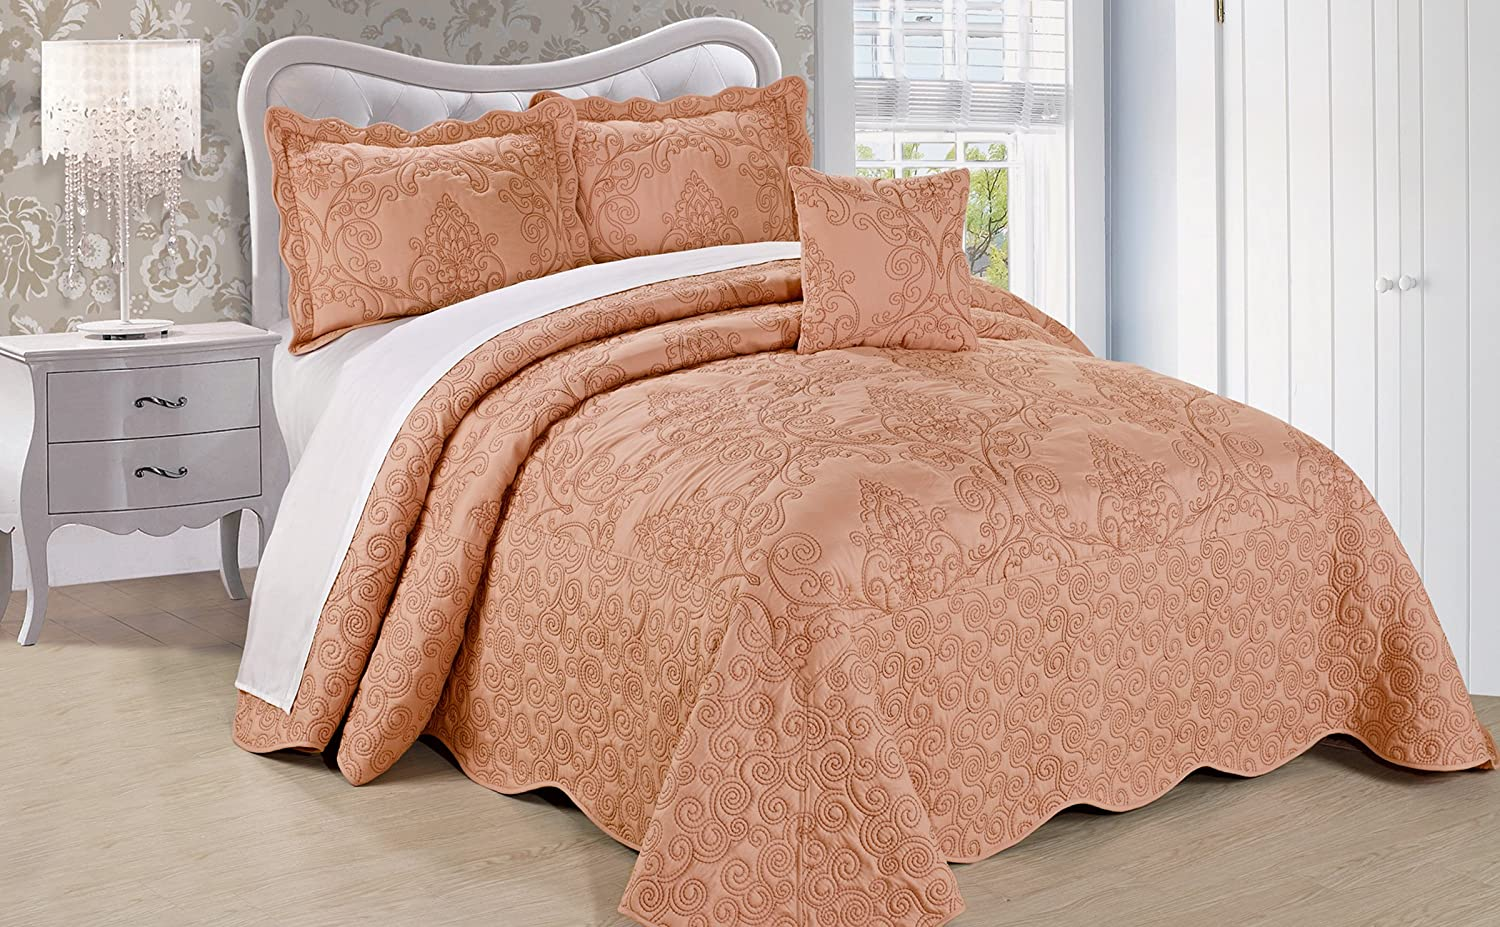 Serenta Damask 4 Piece Bedspread Set, Queen, Dusty Pink